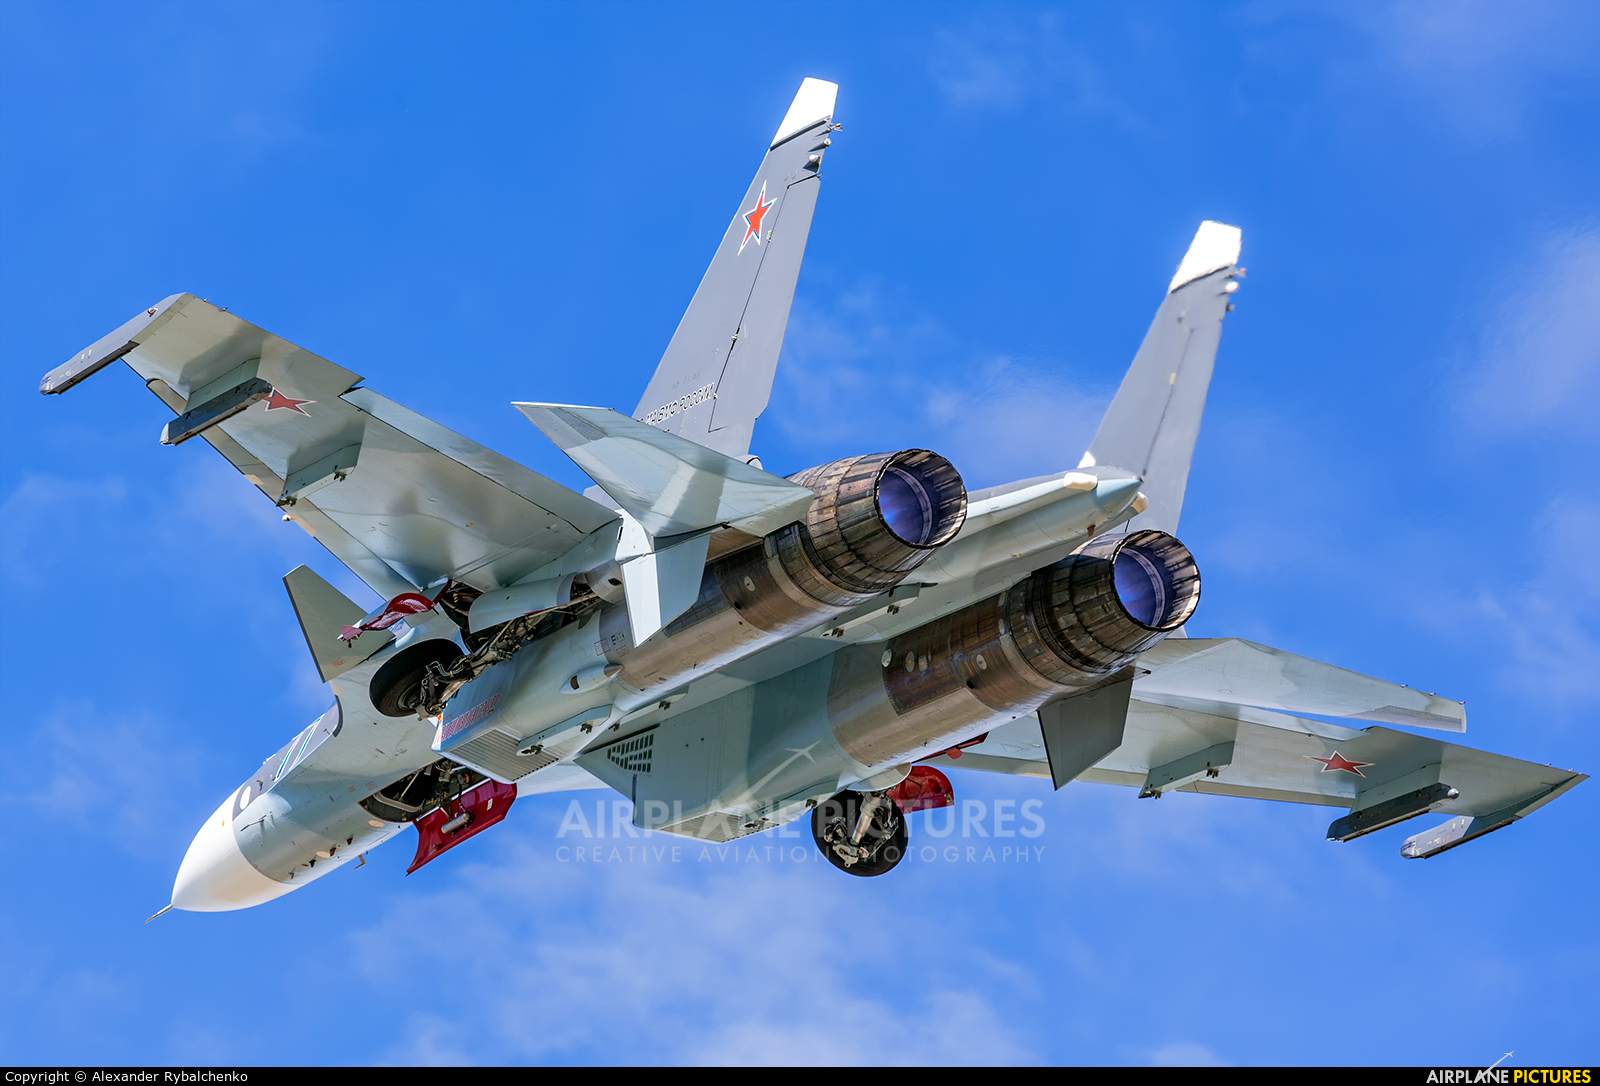 Russia - Navy RF-81881 aircraft at Undisclosed Location